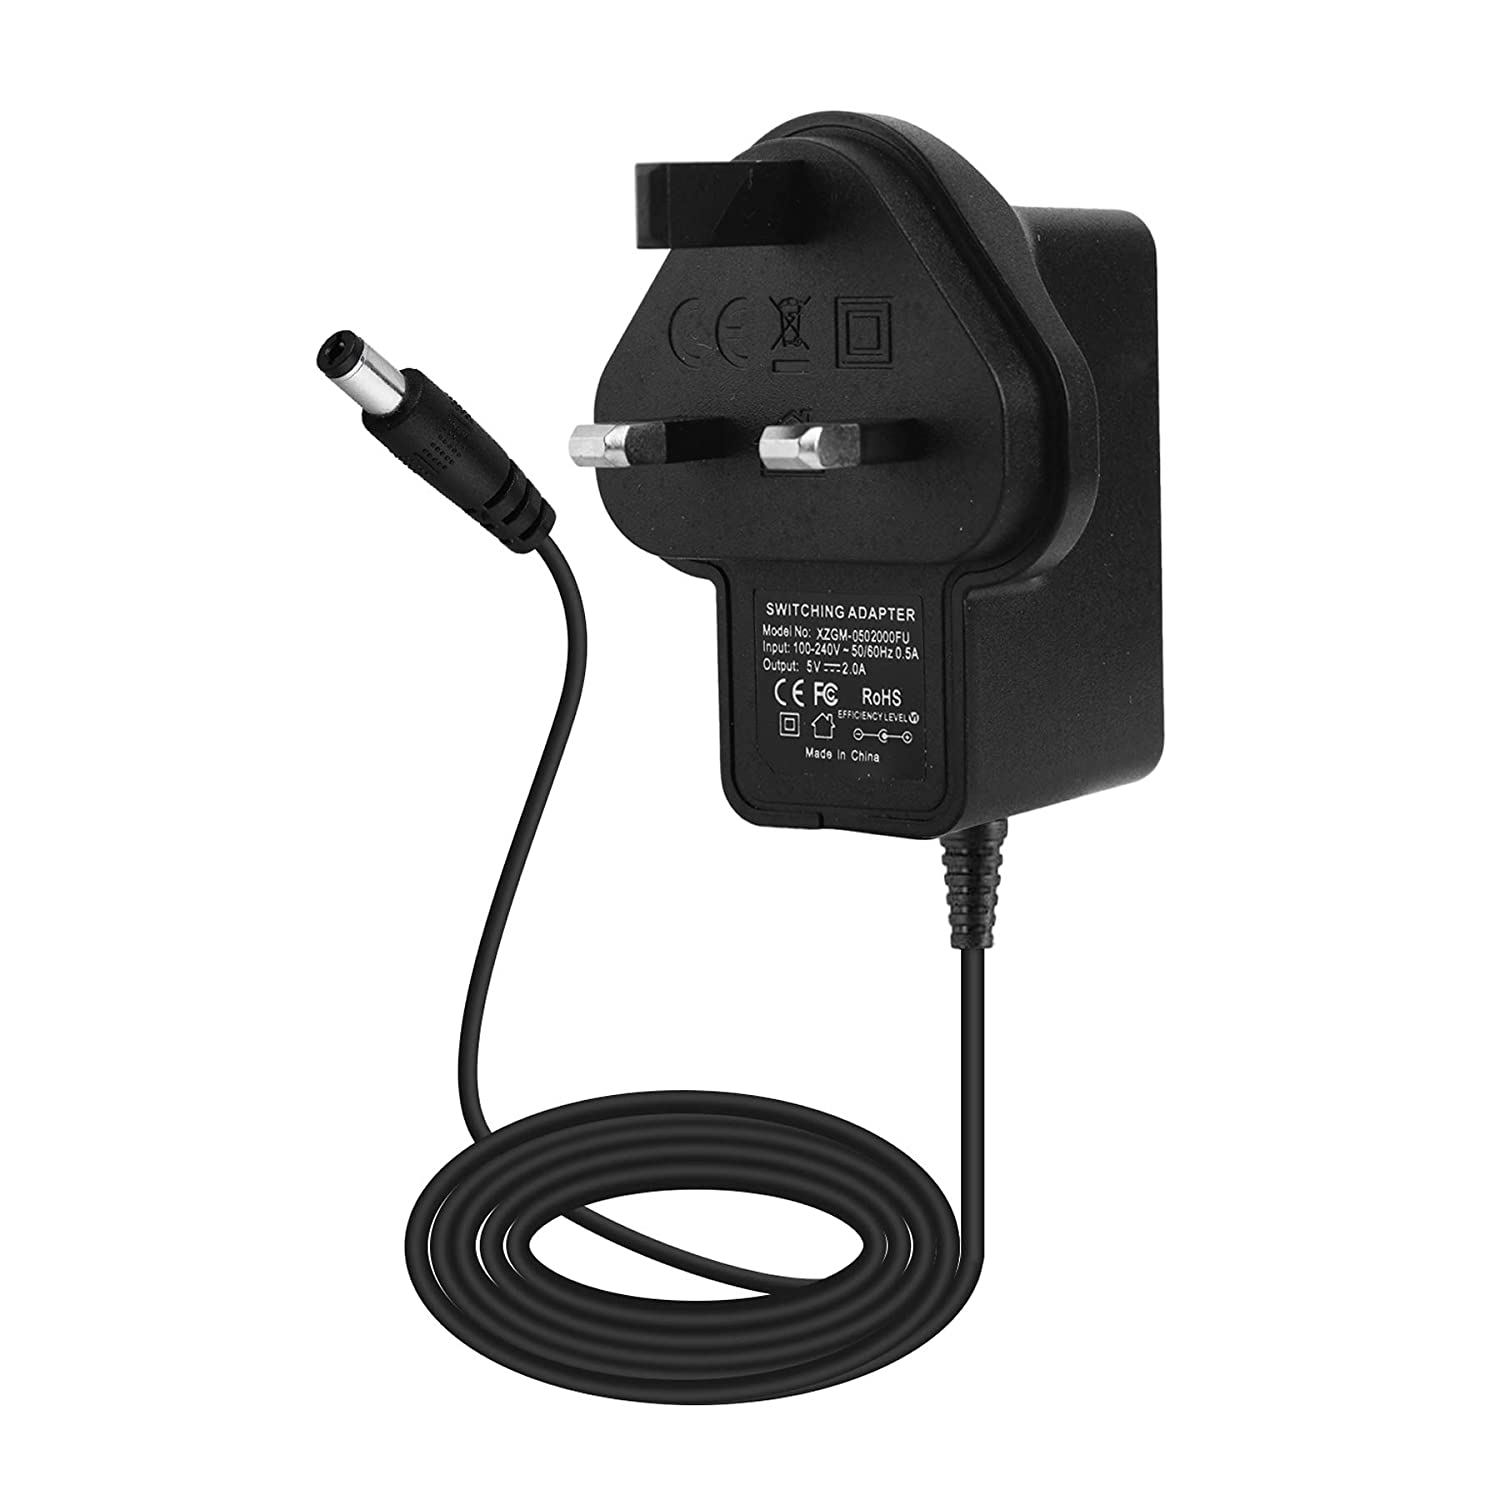 EFISH 5V 2A 10W Switching Power Supply Adapter Wall Charger Interior Negro cargador de dispositivo m/óvil